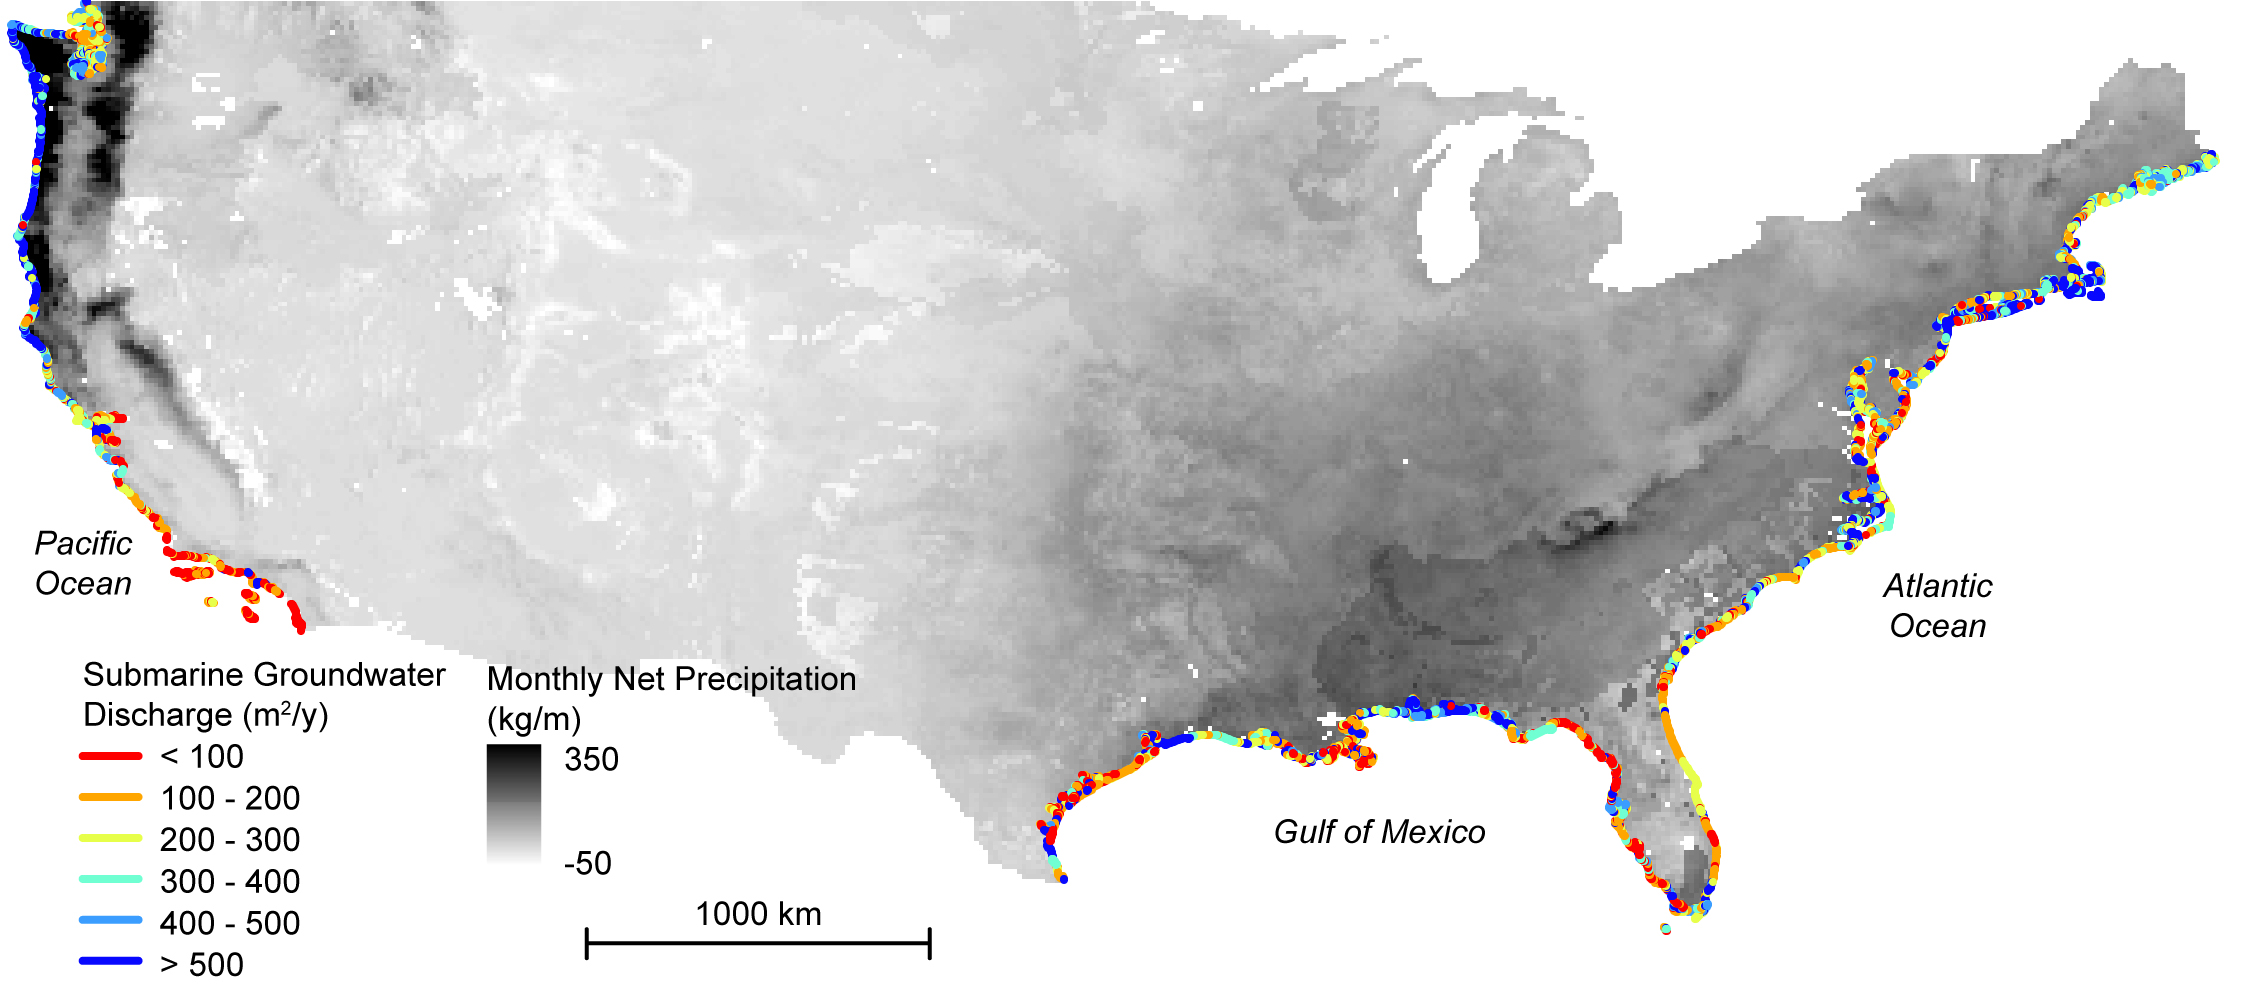 New Tool May Assist US Regional Sea Level Planning NASA - Map of us land originally held by mexico